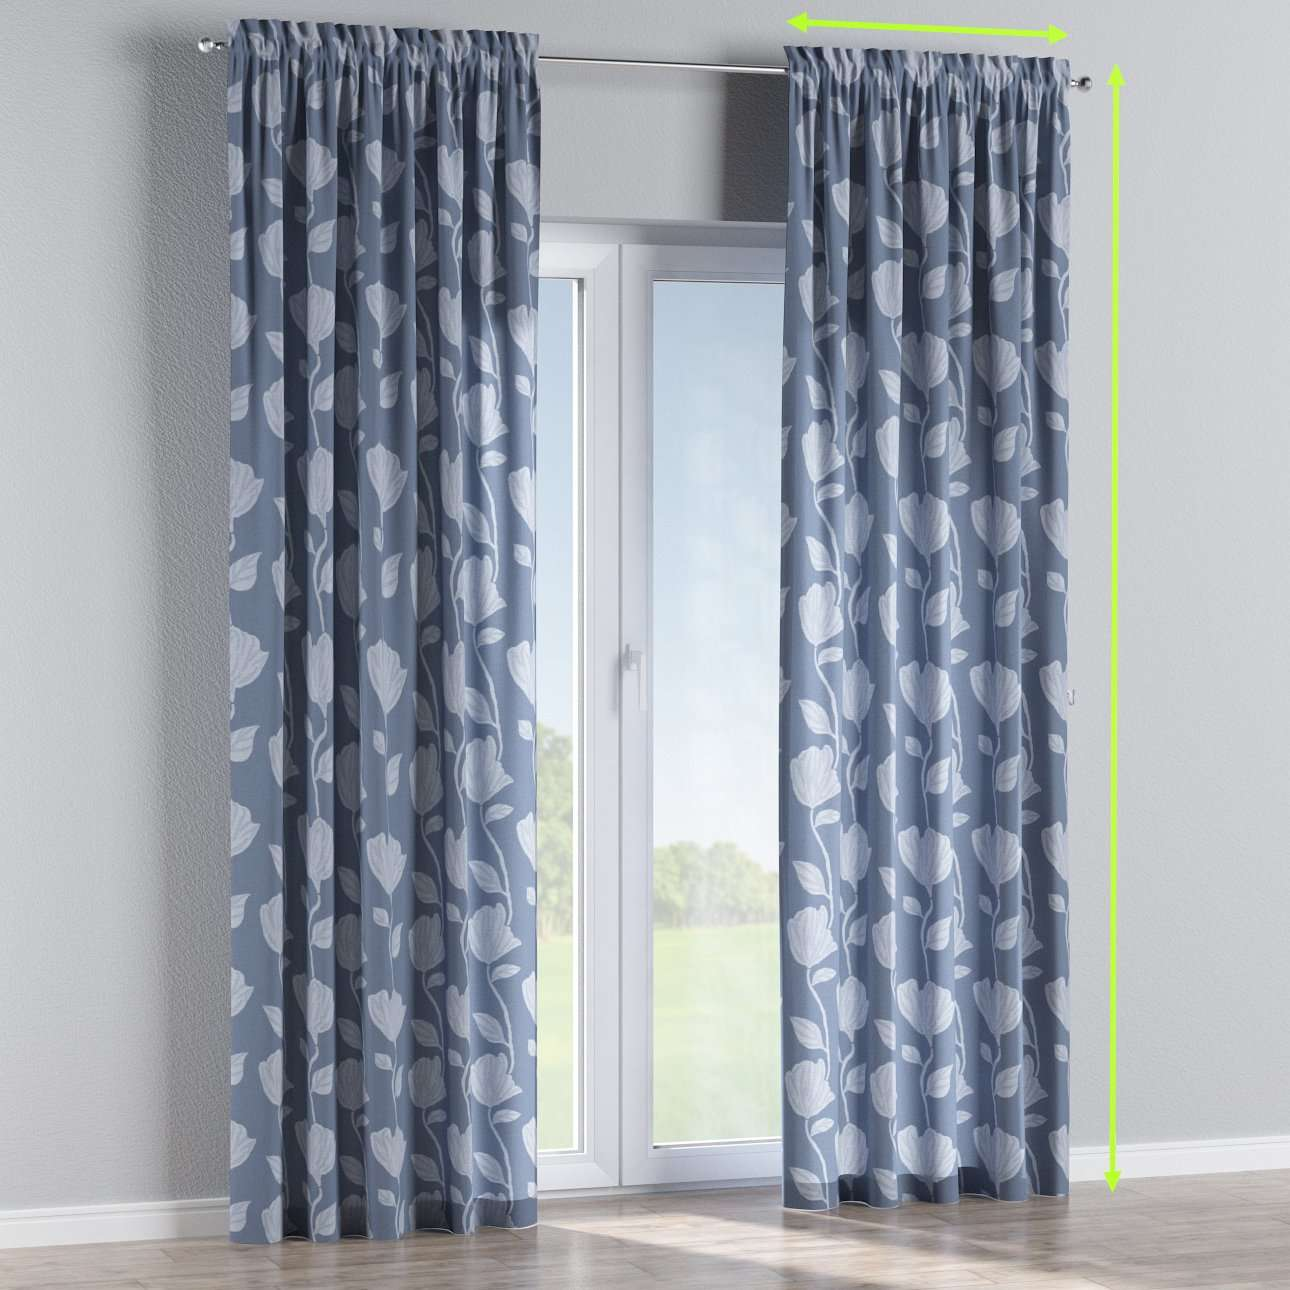 Slot and frill lined curtains in collection Venice, fabric: 140-61